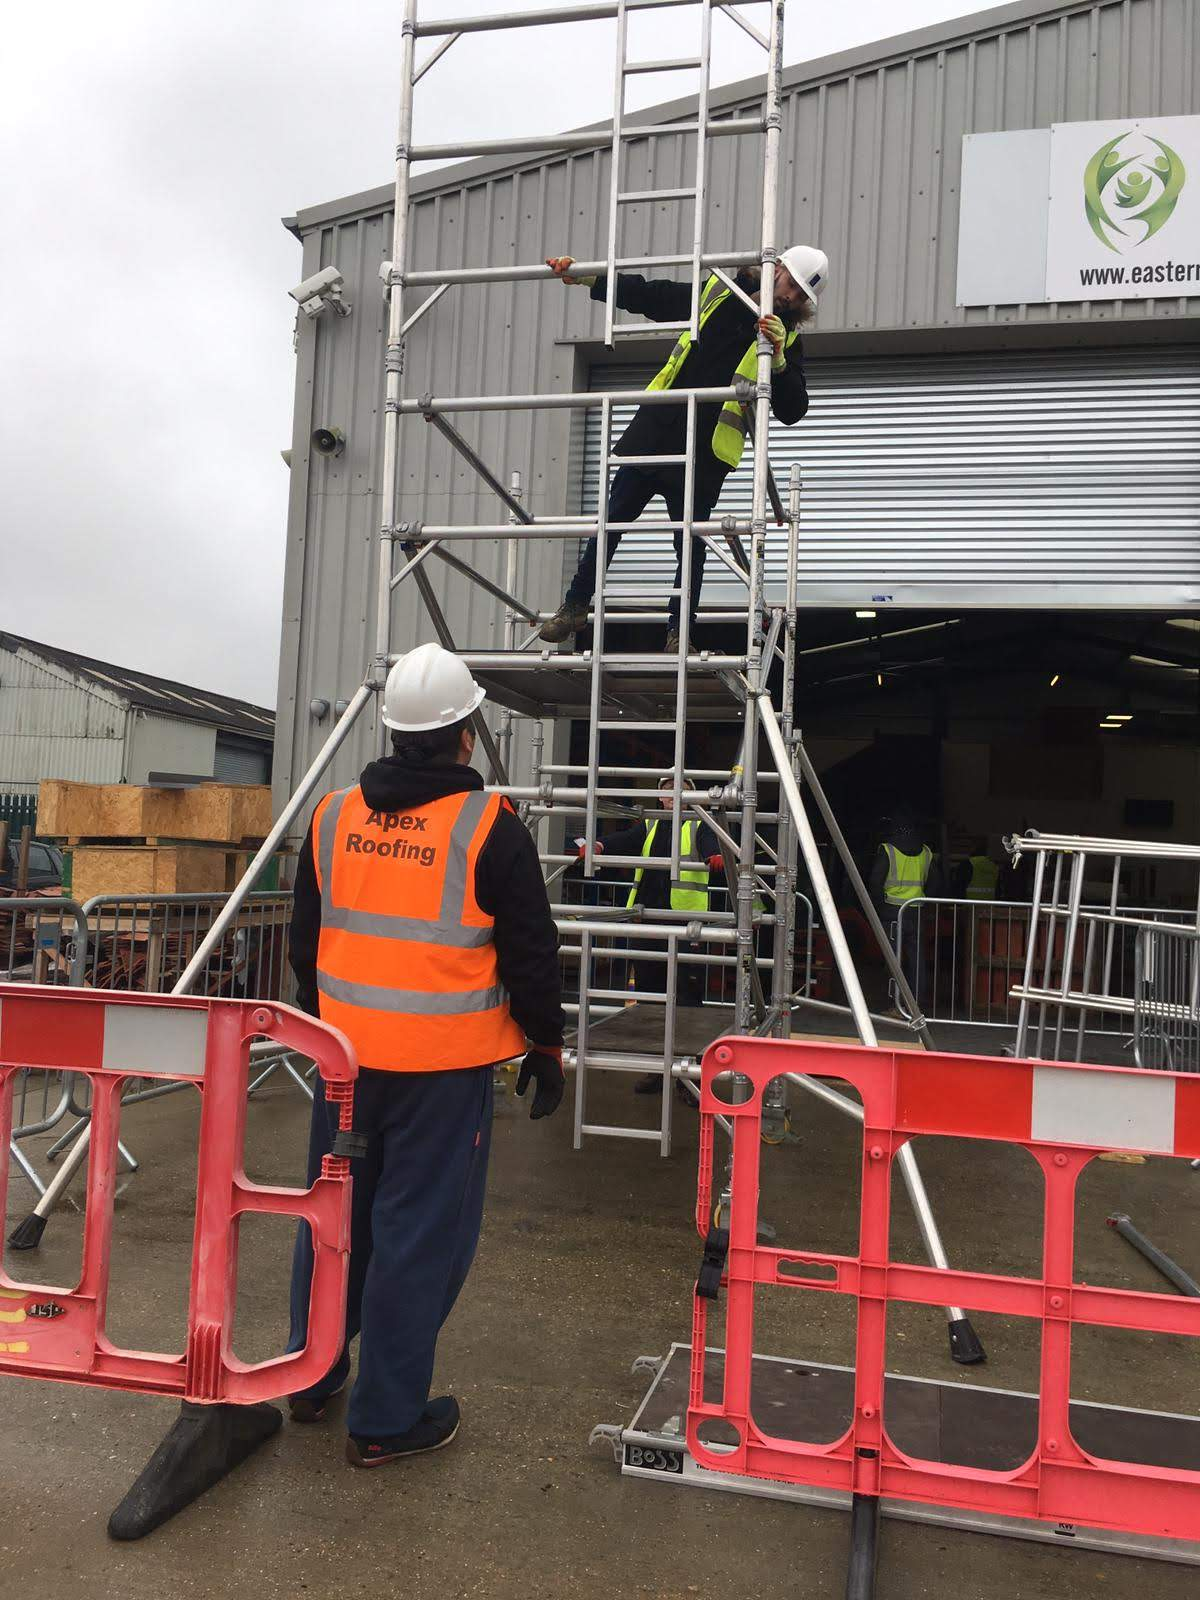 Tower Training Course Pasma In Ipswich Suffolk